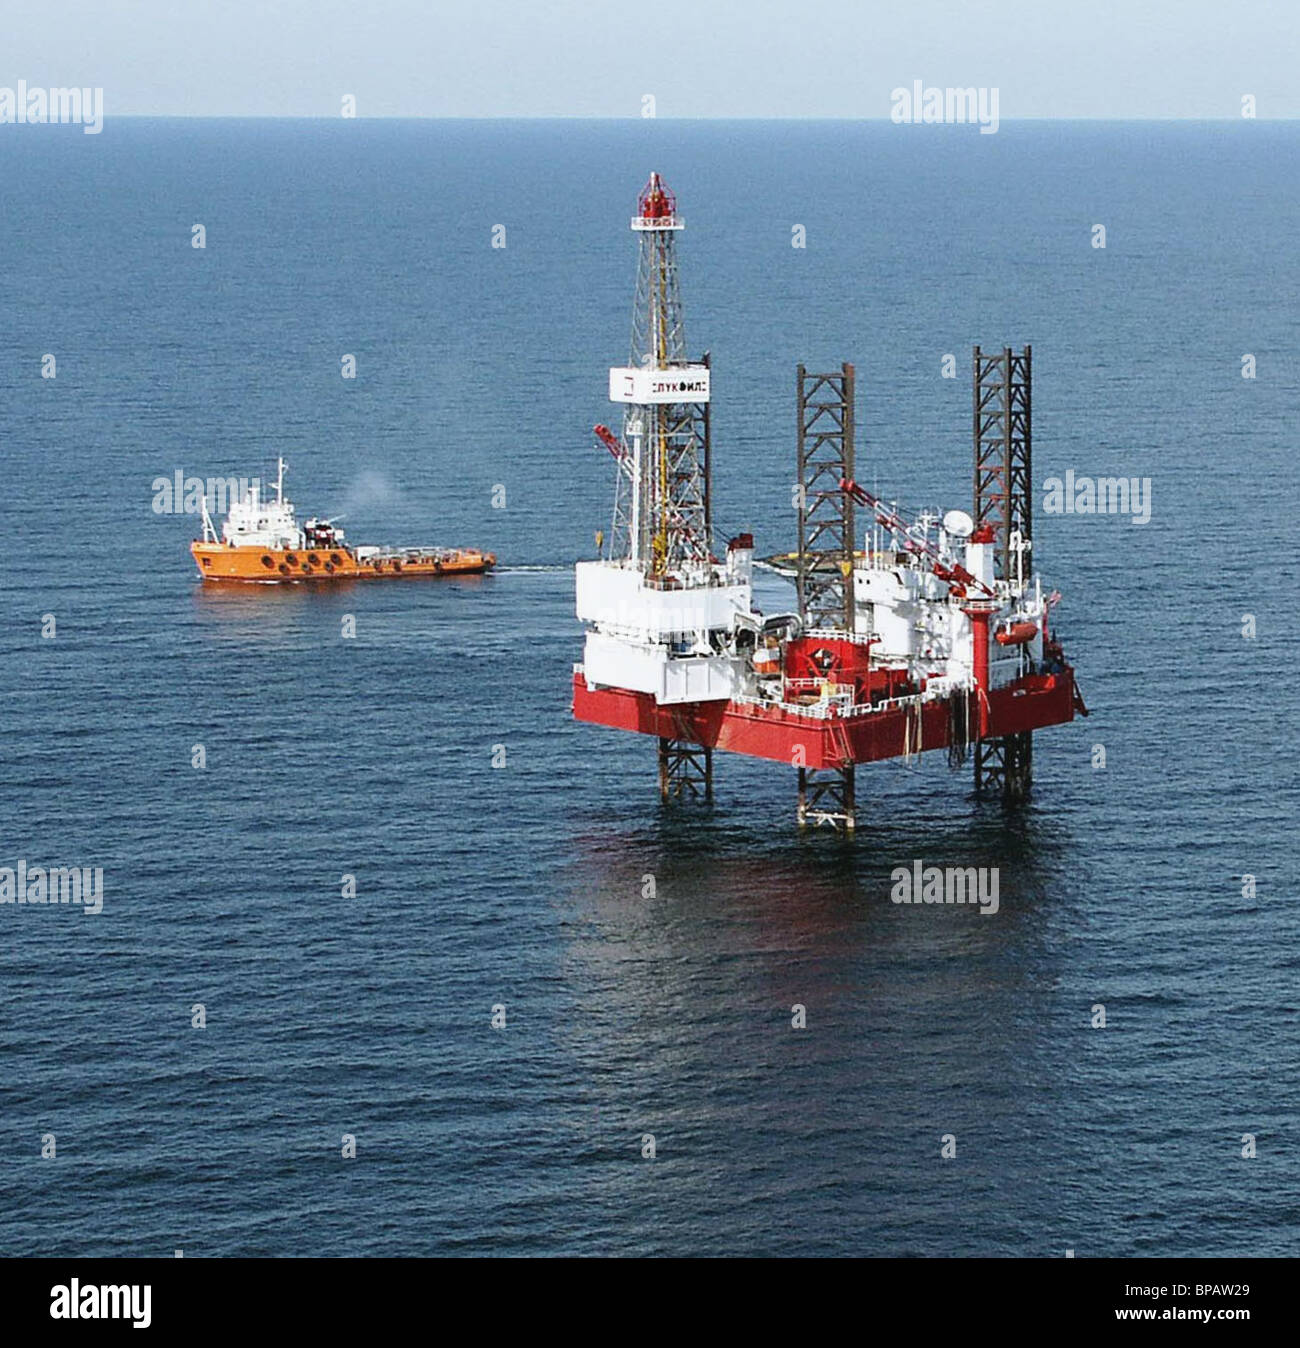 Astra oil rig functiones in the Caspian Sea - Stock Image